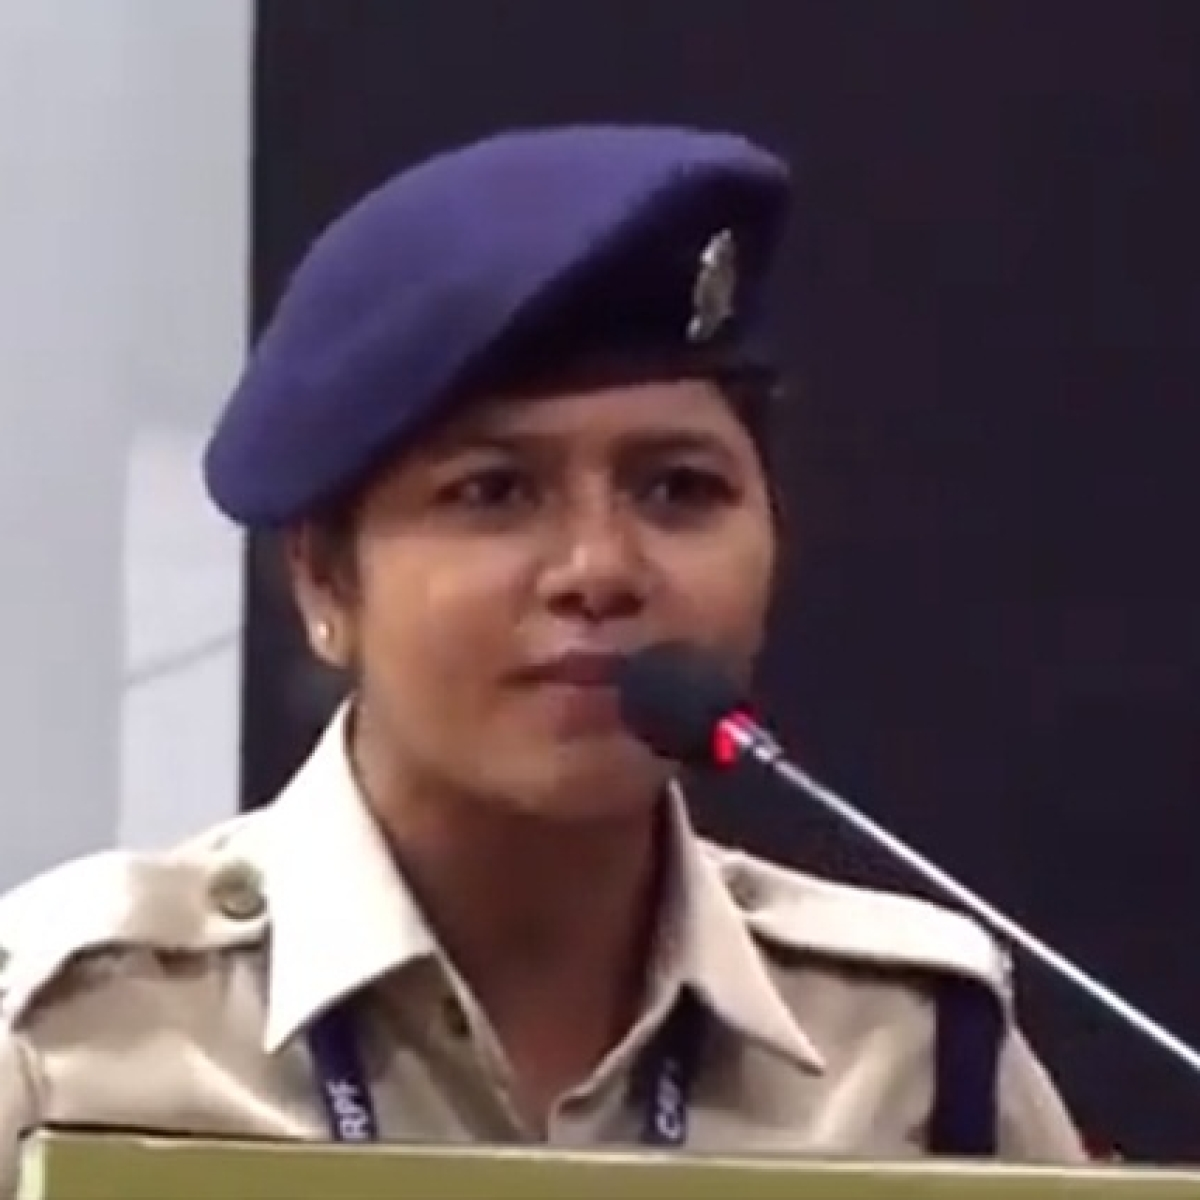 CRPF says it respects human rights 'unconditionally' after constable's debate video goes viral